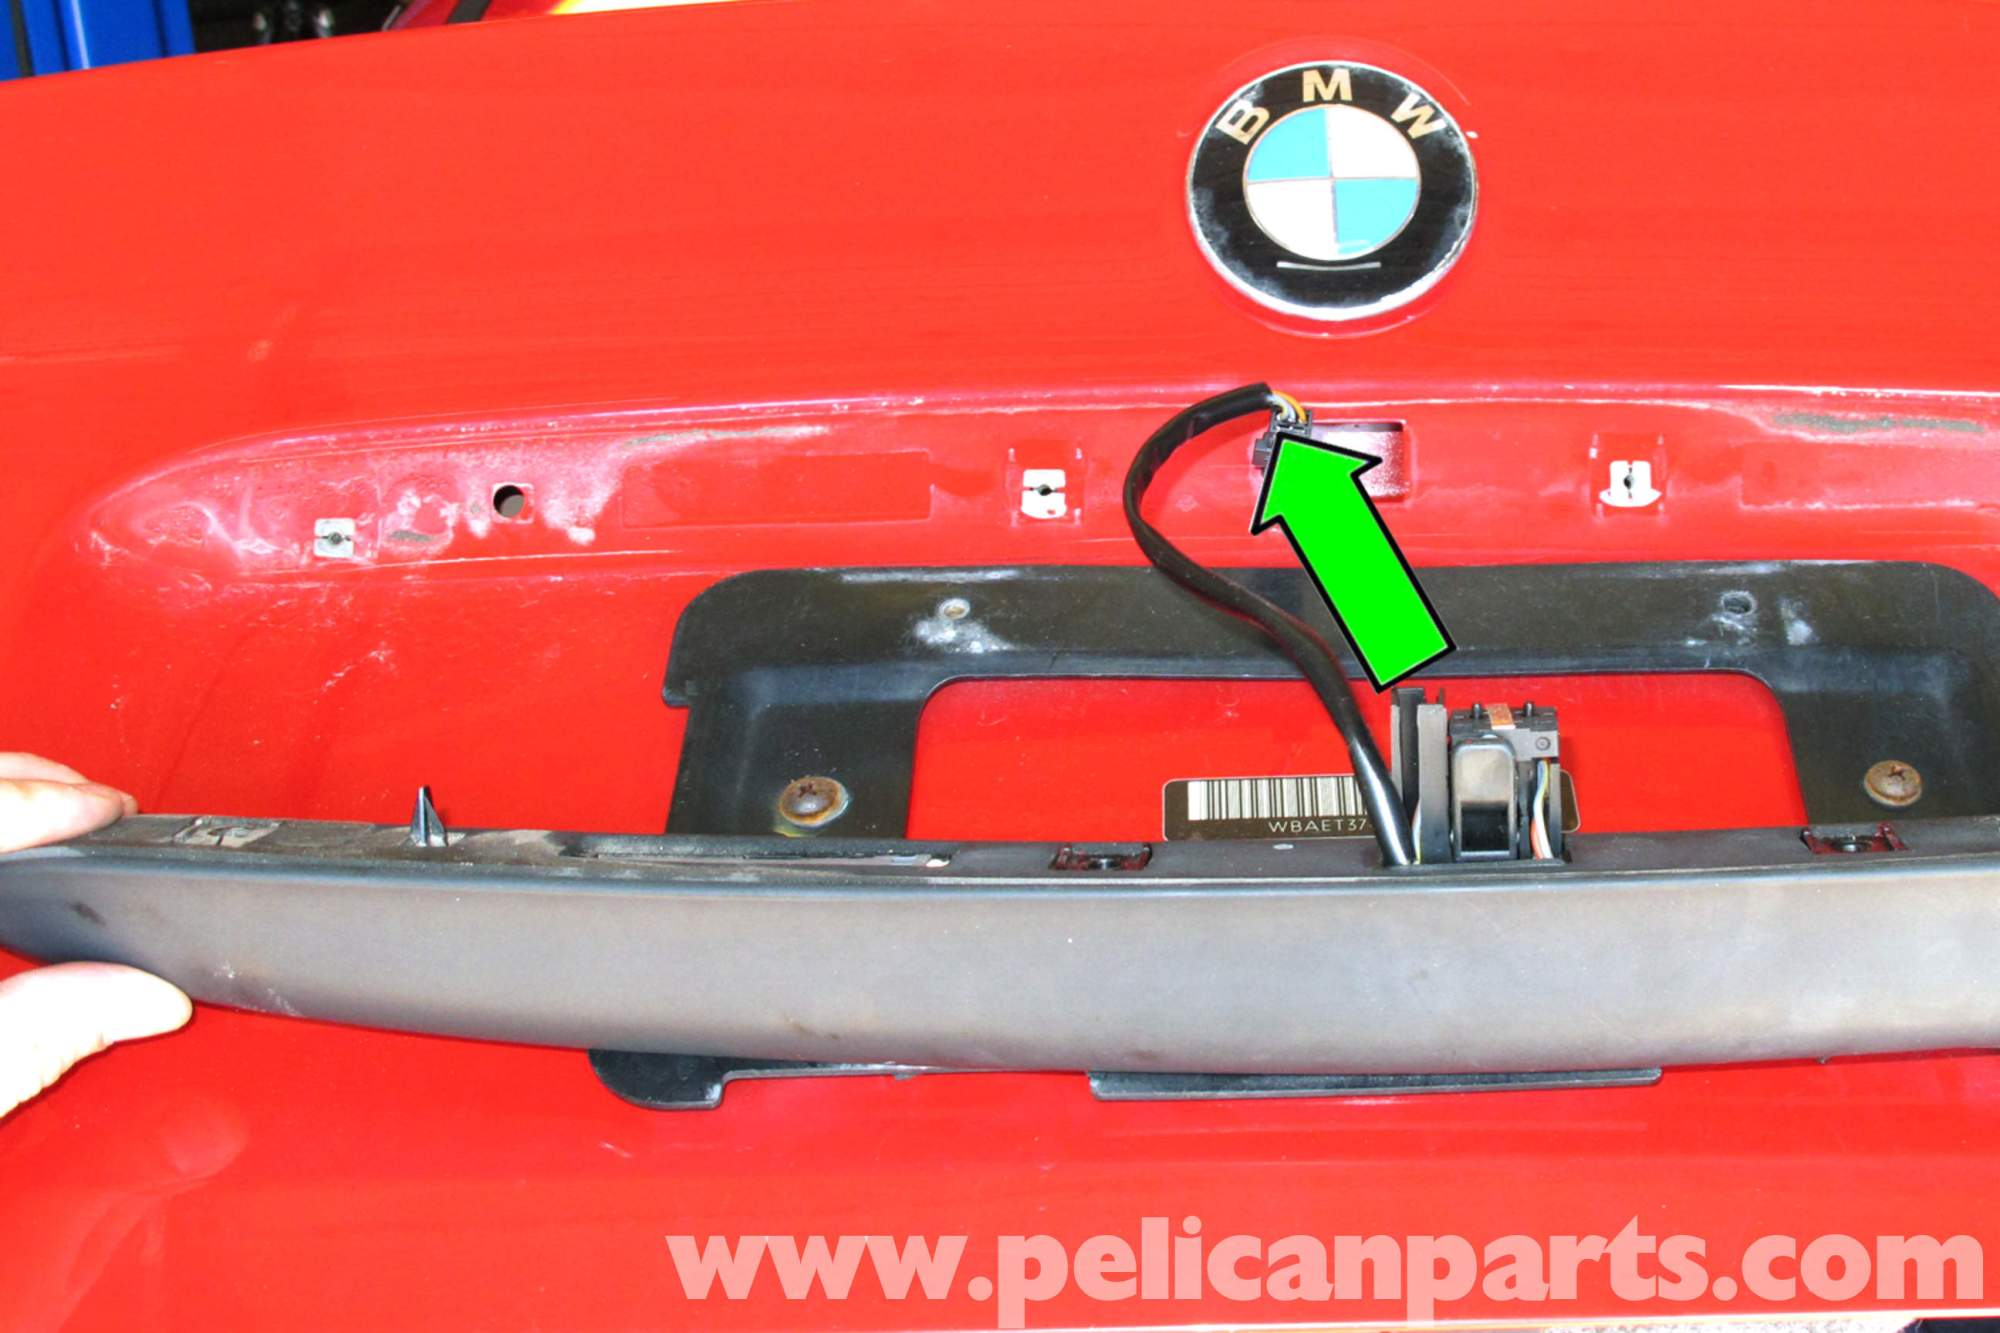 hight resolution of bmw e46 trunk release button replacement bmw 325i 2001 2005 bmw bmw e46 navigation circuit diagram bmw e46 trunk wiring diagram